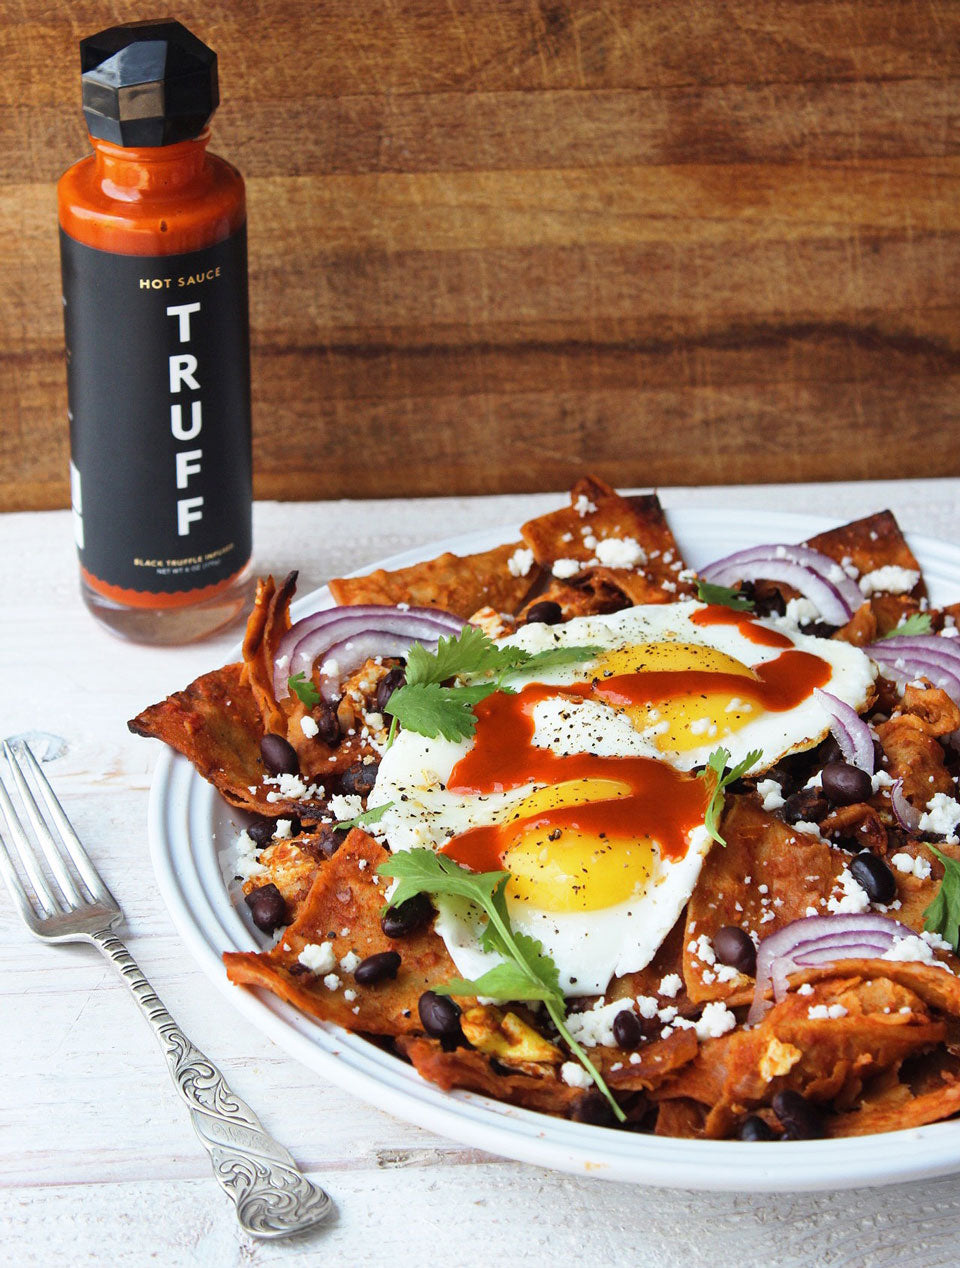 Truff Spicy Truffle Chilaquiles